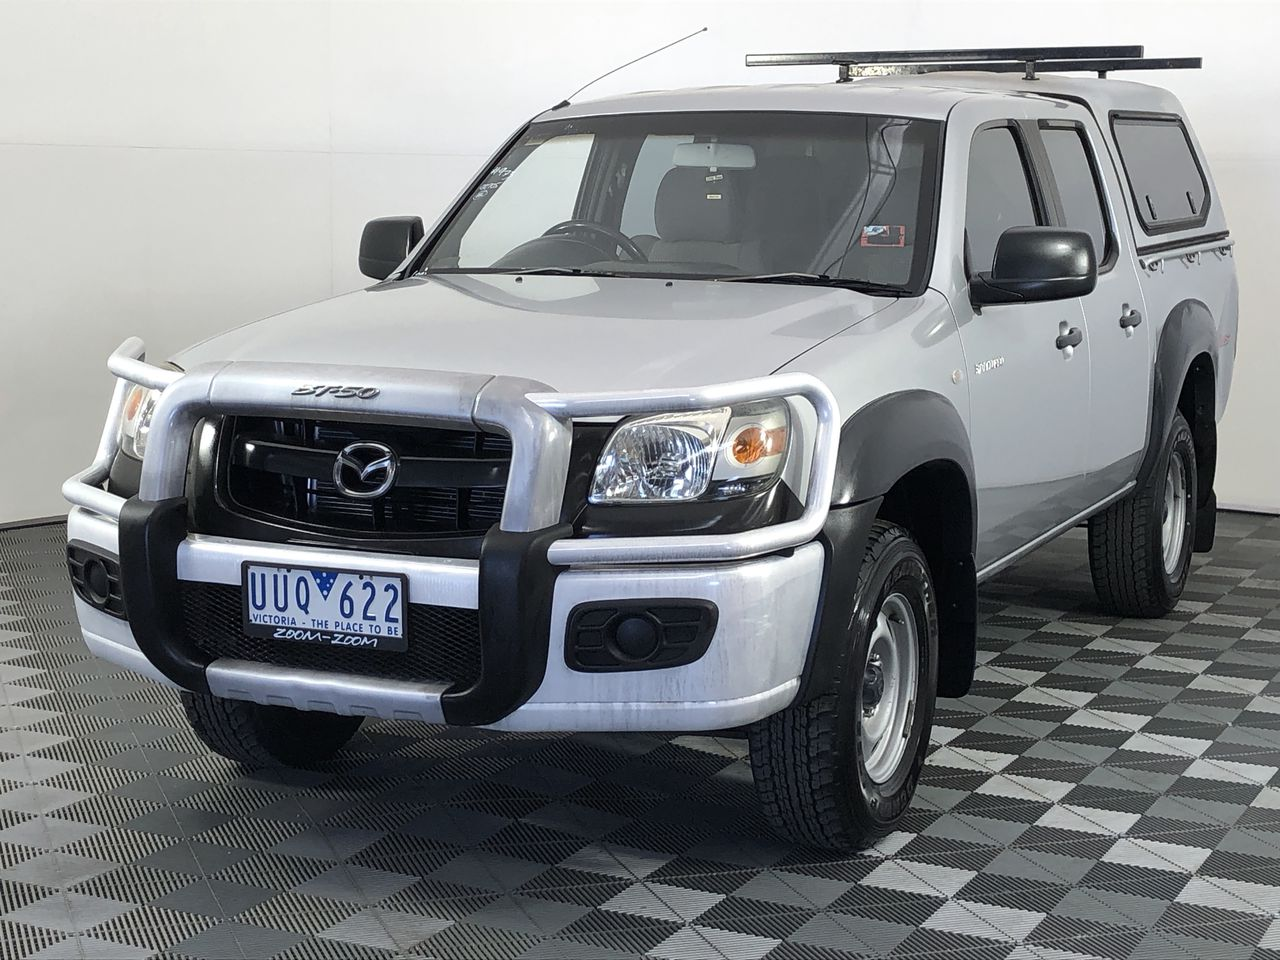 2007 Mazda BT-50 DX B3000 Turbo Diesel Manual Dual Cab